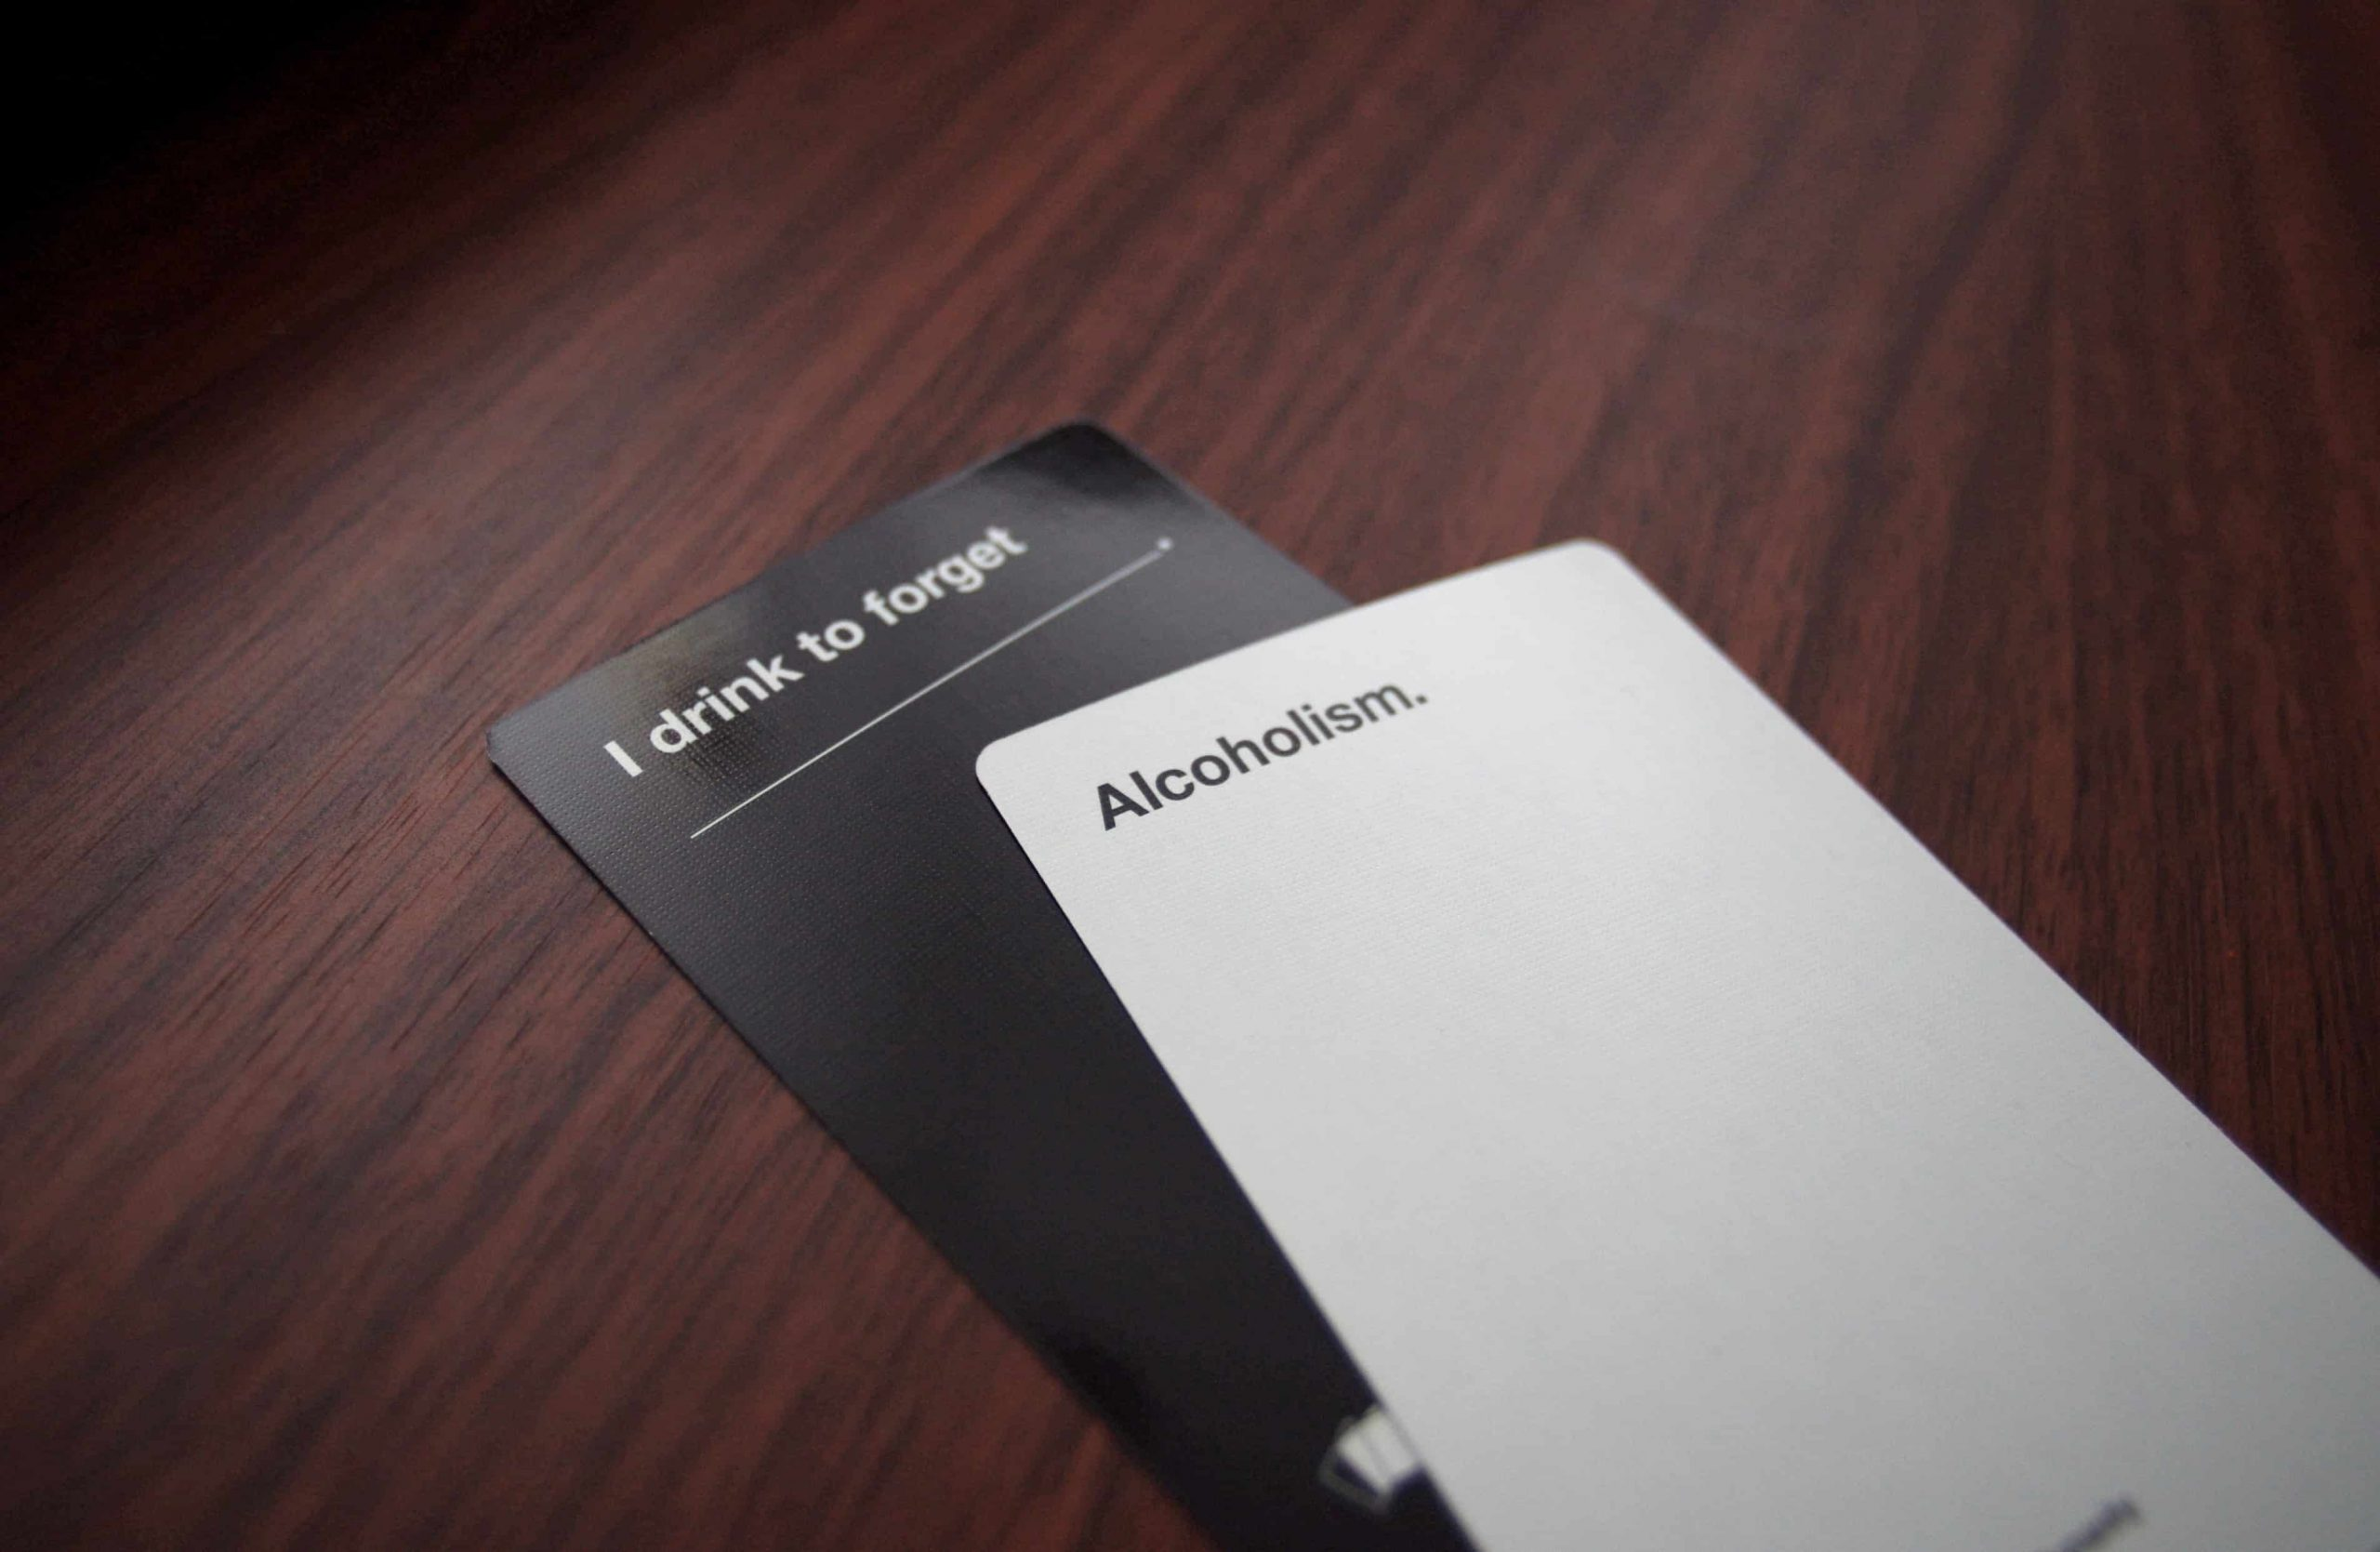 cards against humanity example 4